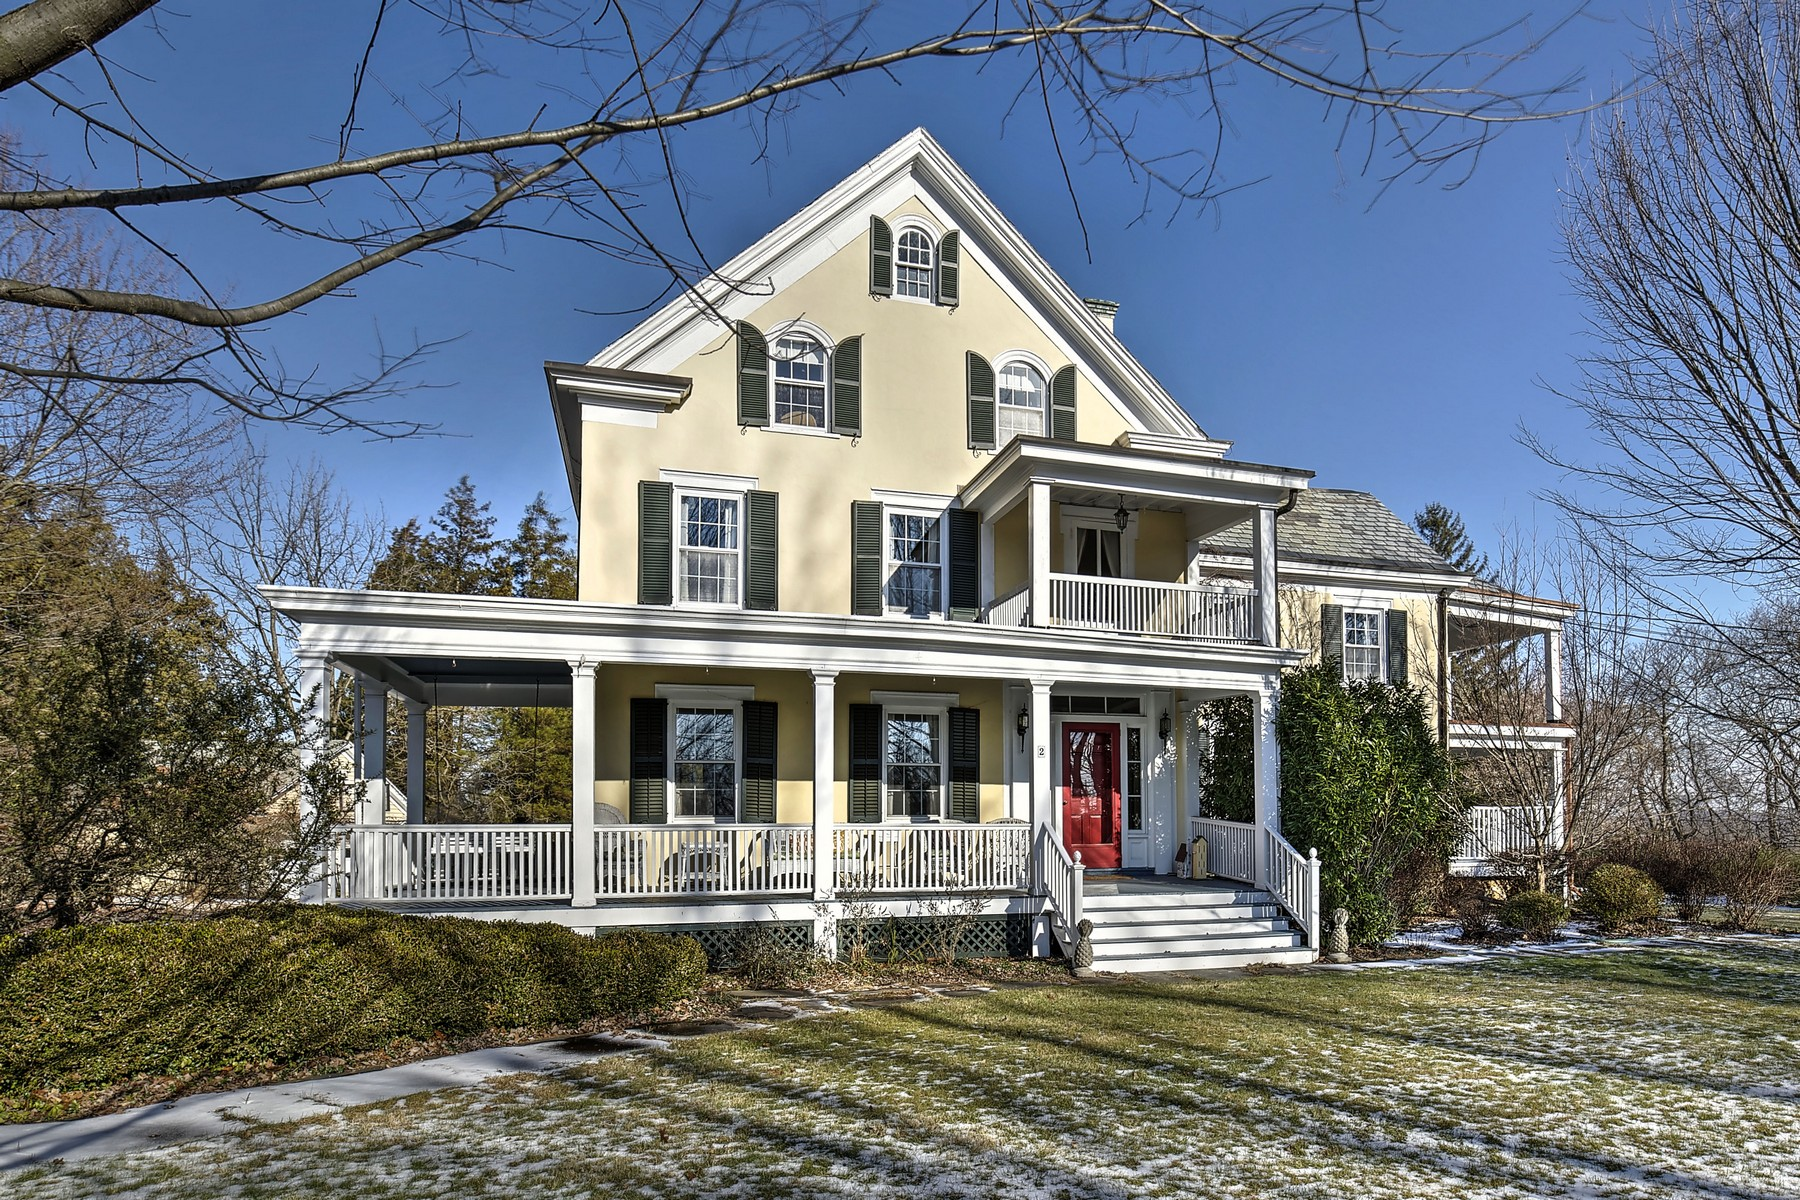 Single Family Home for Sale at Historic Colonial 2 Talmage Road Mendham, New Jersey 07945 United States